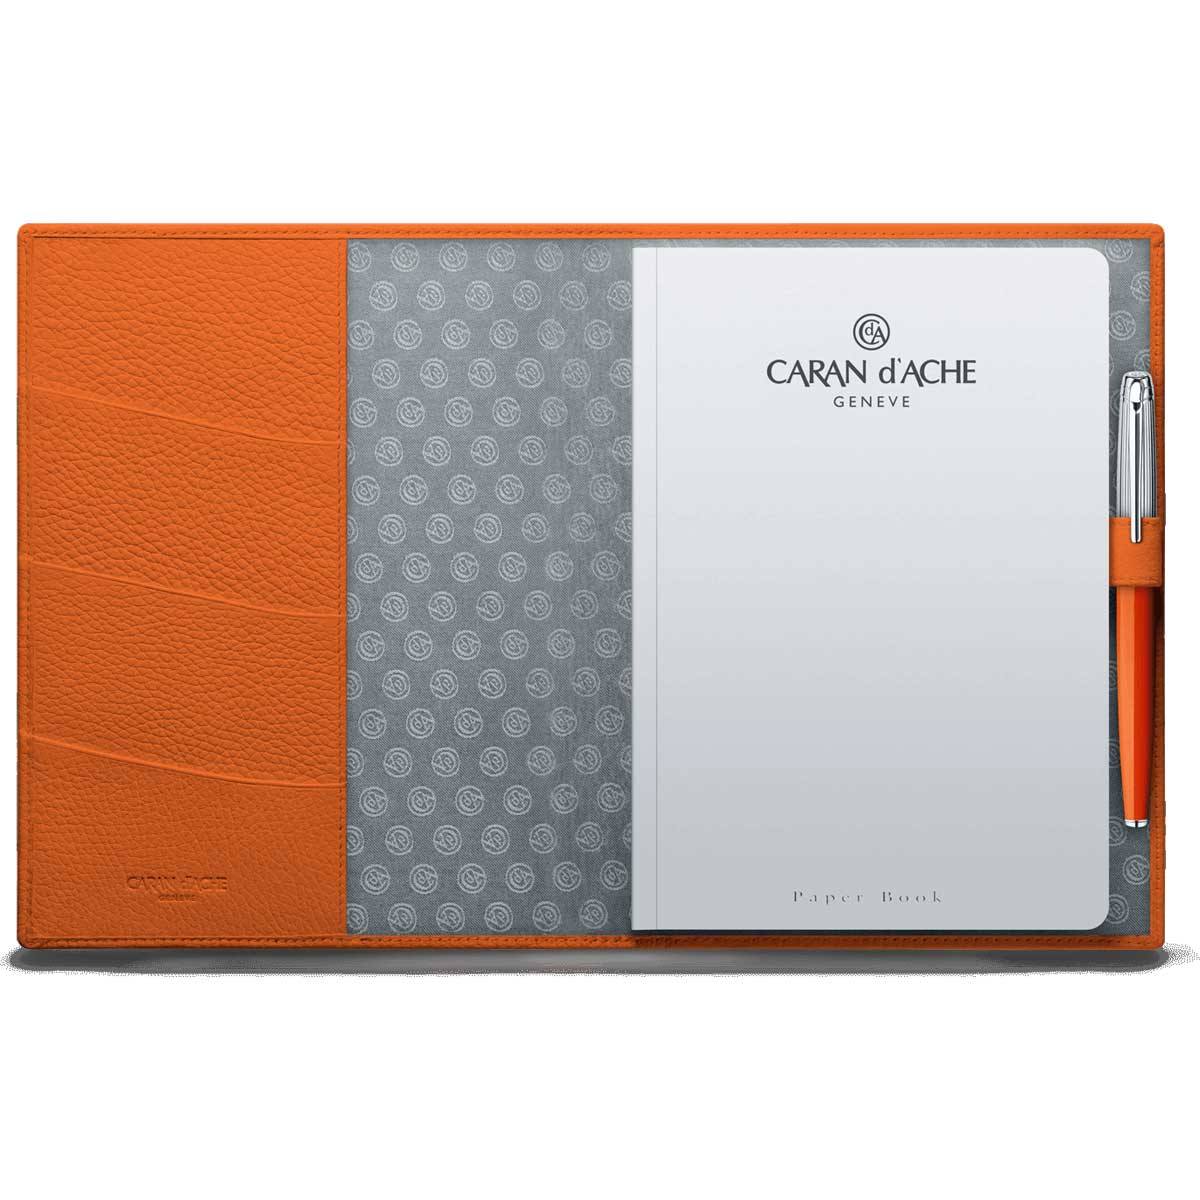 Caran d'Ache Leman Saffron Leather A5 Notebook